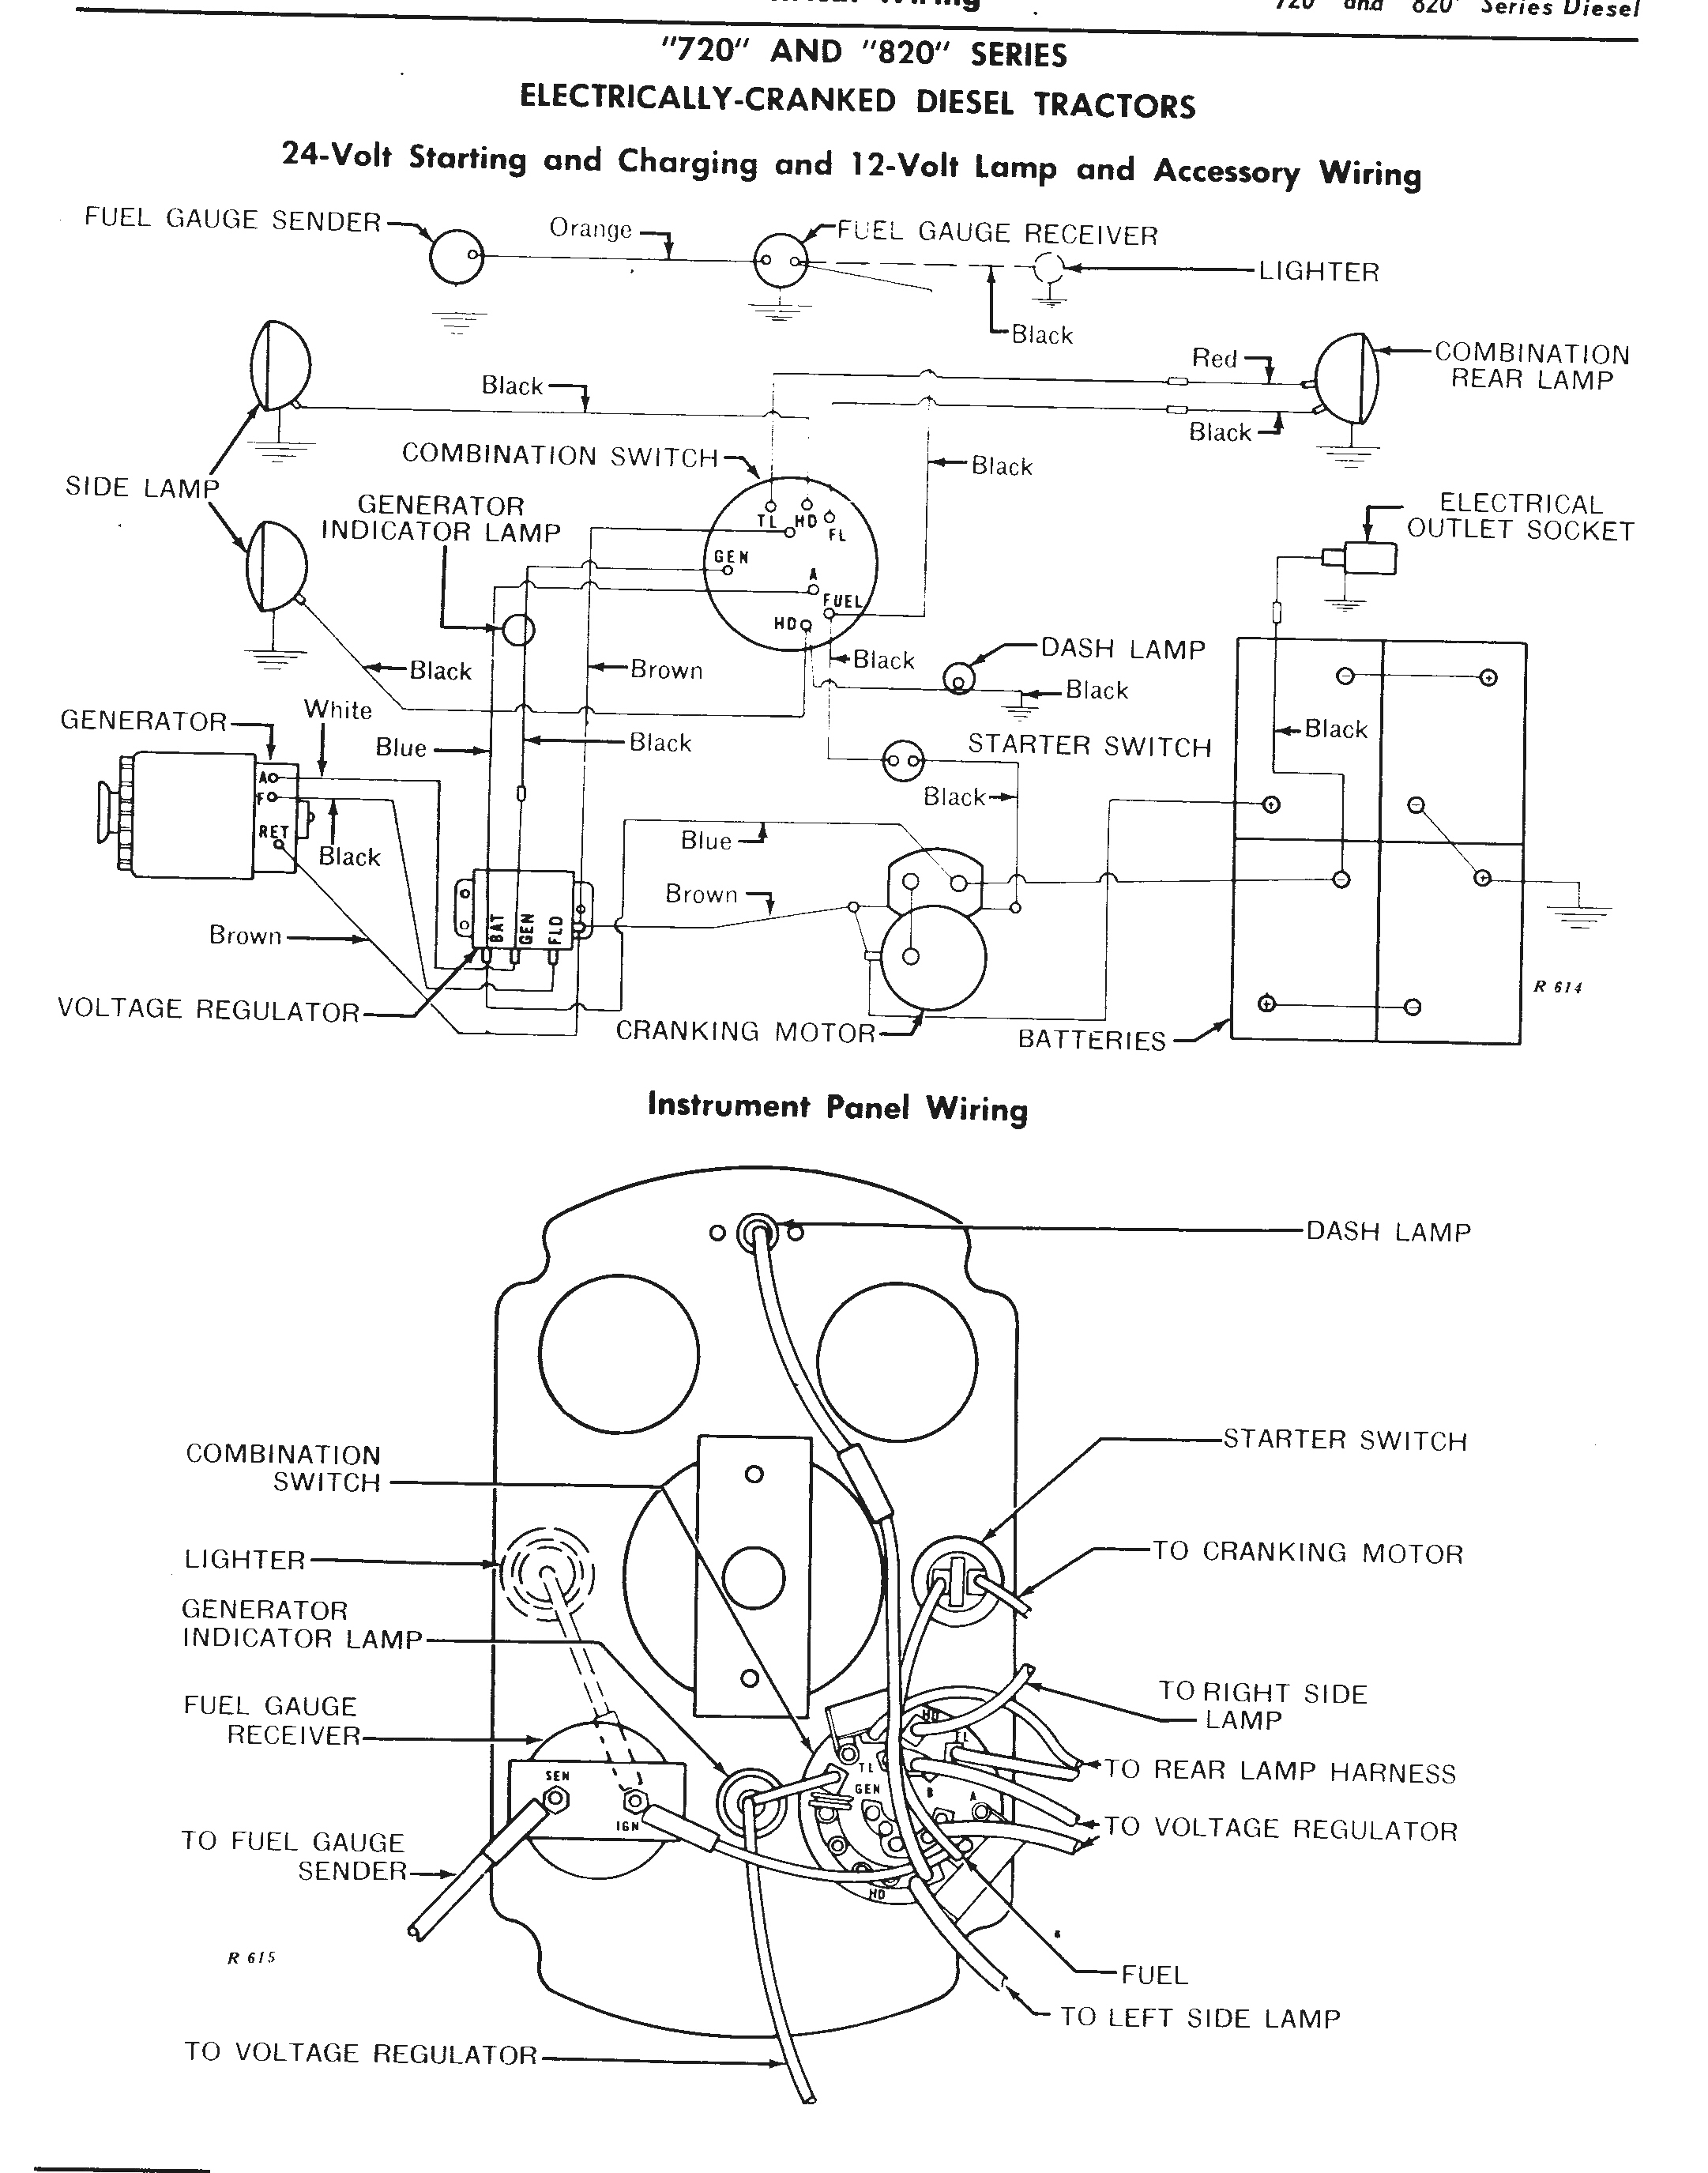 24 volt wiring diagram for trailer mounted brake controller the john deere electrical system explained 6